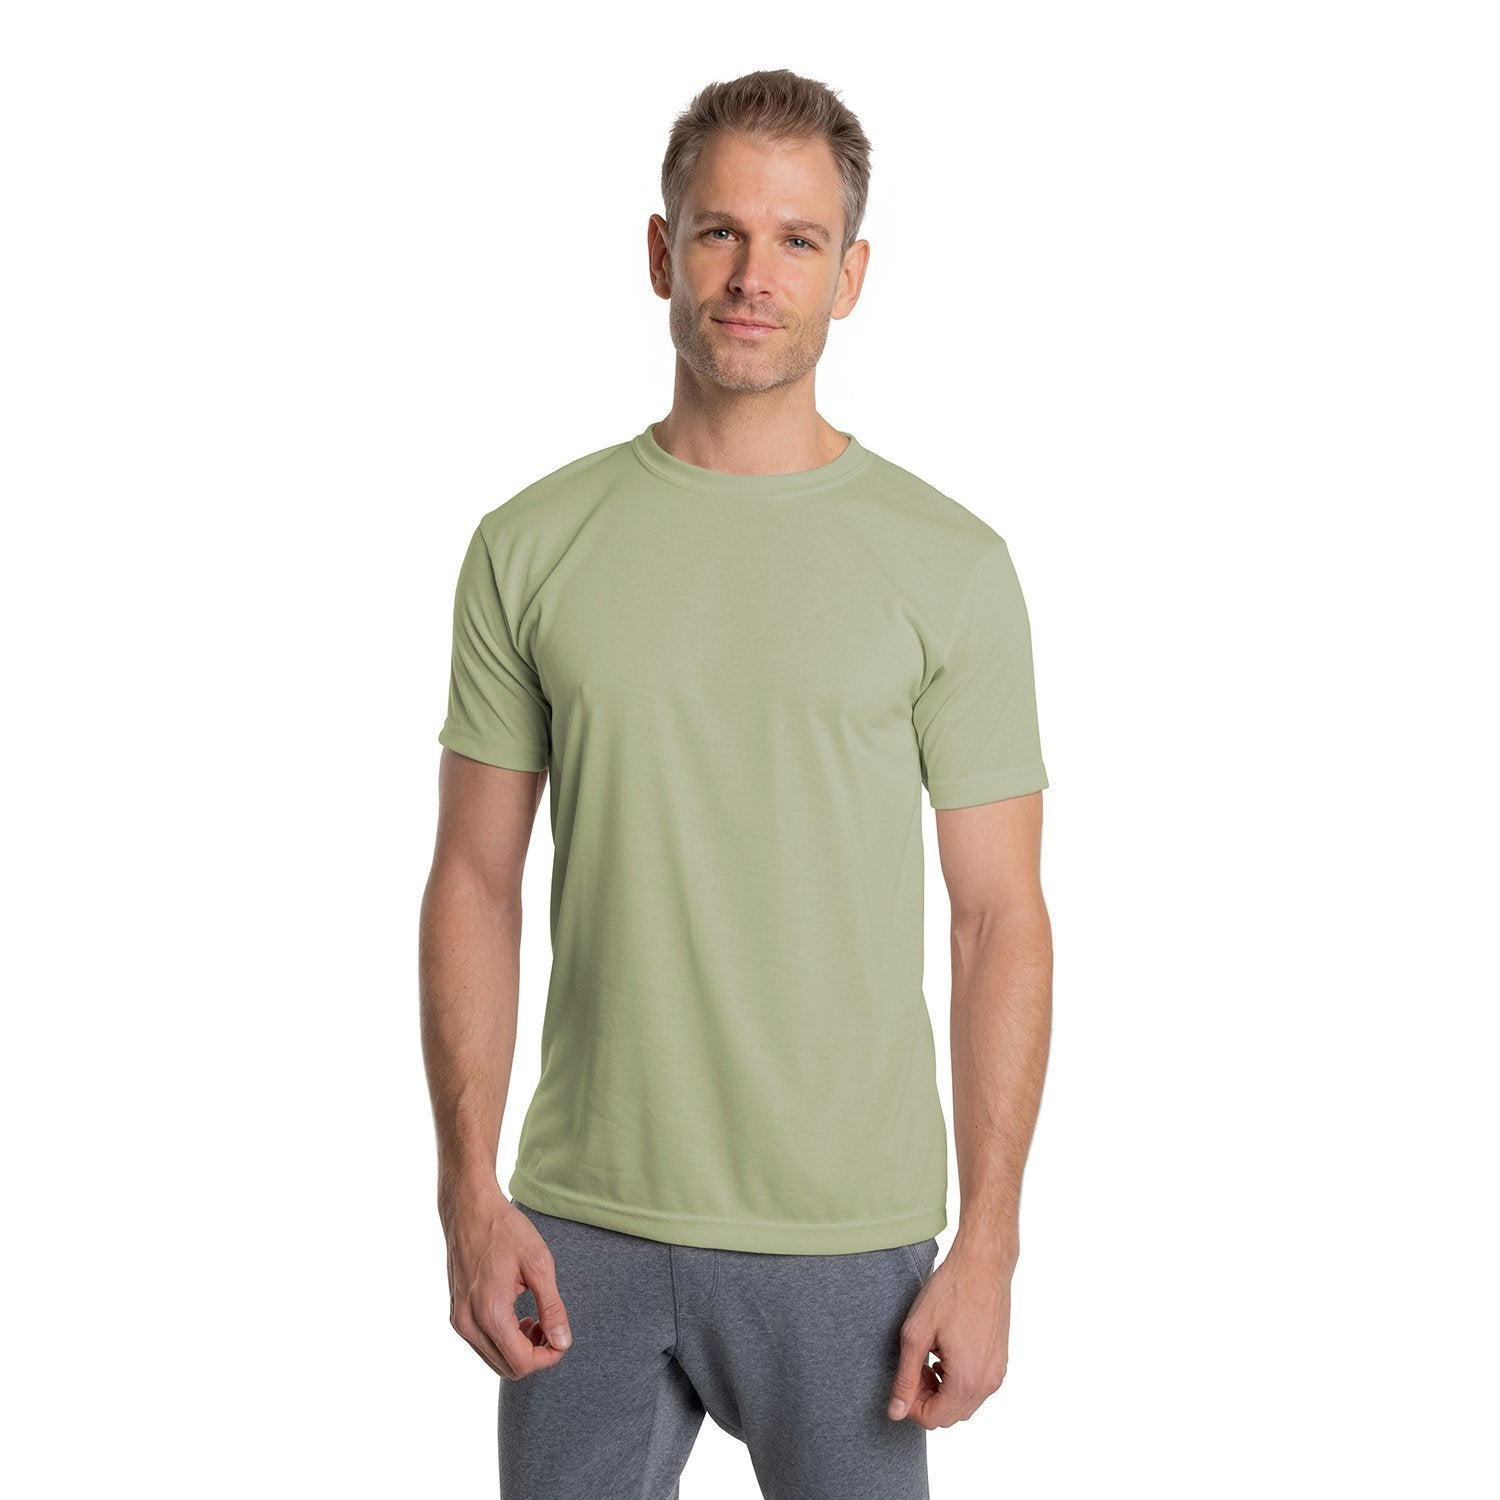 A1SJBBAS Basic Performance T-Shirt - Alpine Spruce